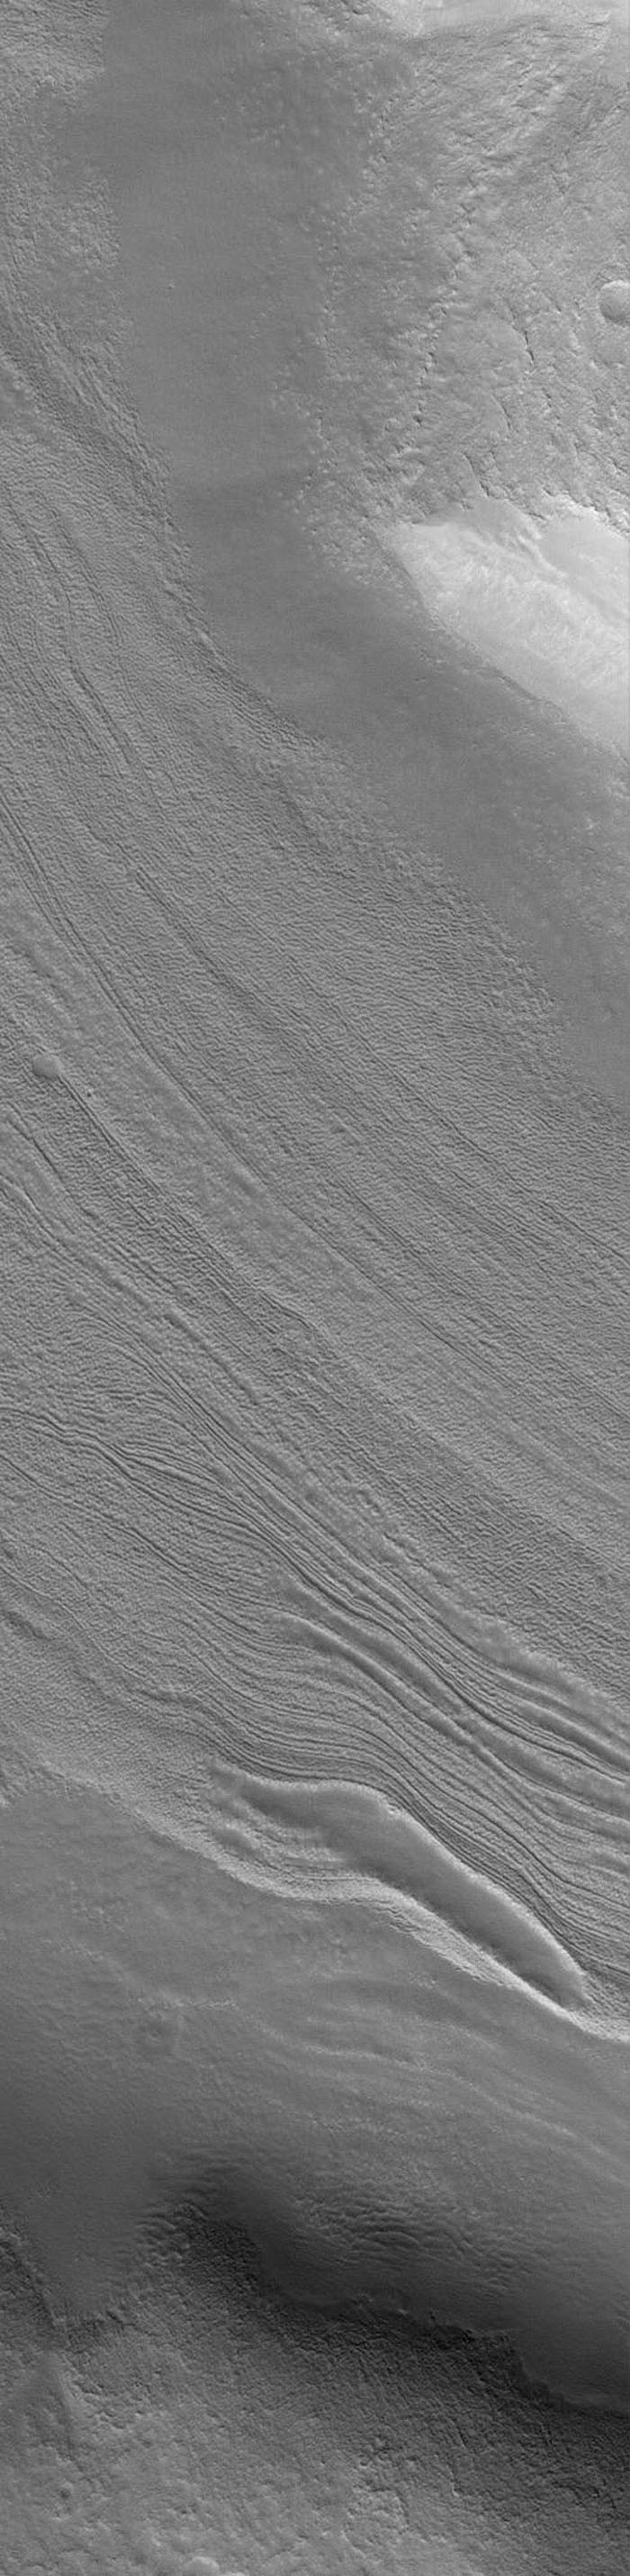 NASA's Mars Global Surveyor shows a typical fretted terrain valley floor, located southwest of Moreux Crater on Mars.